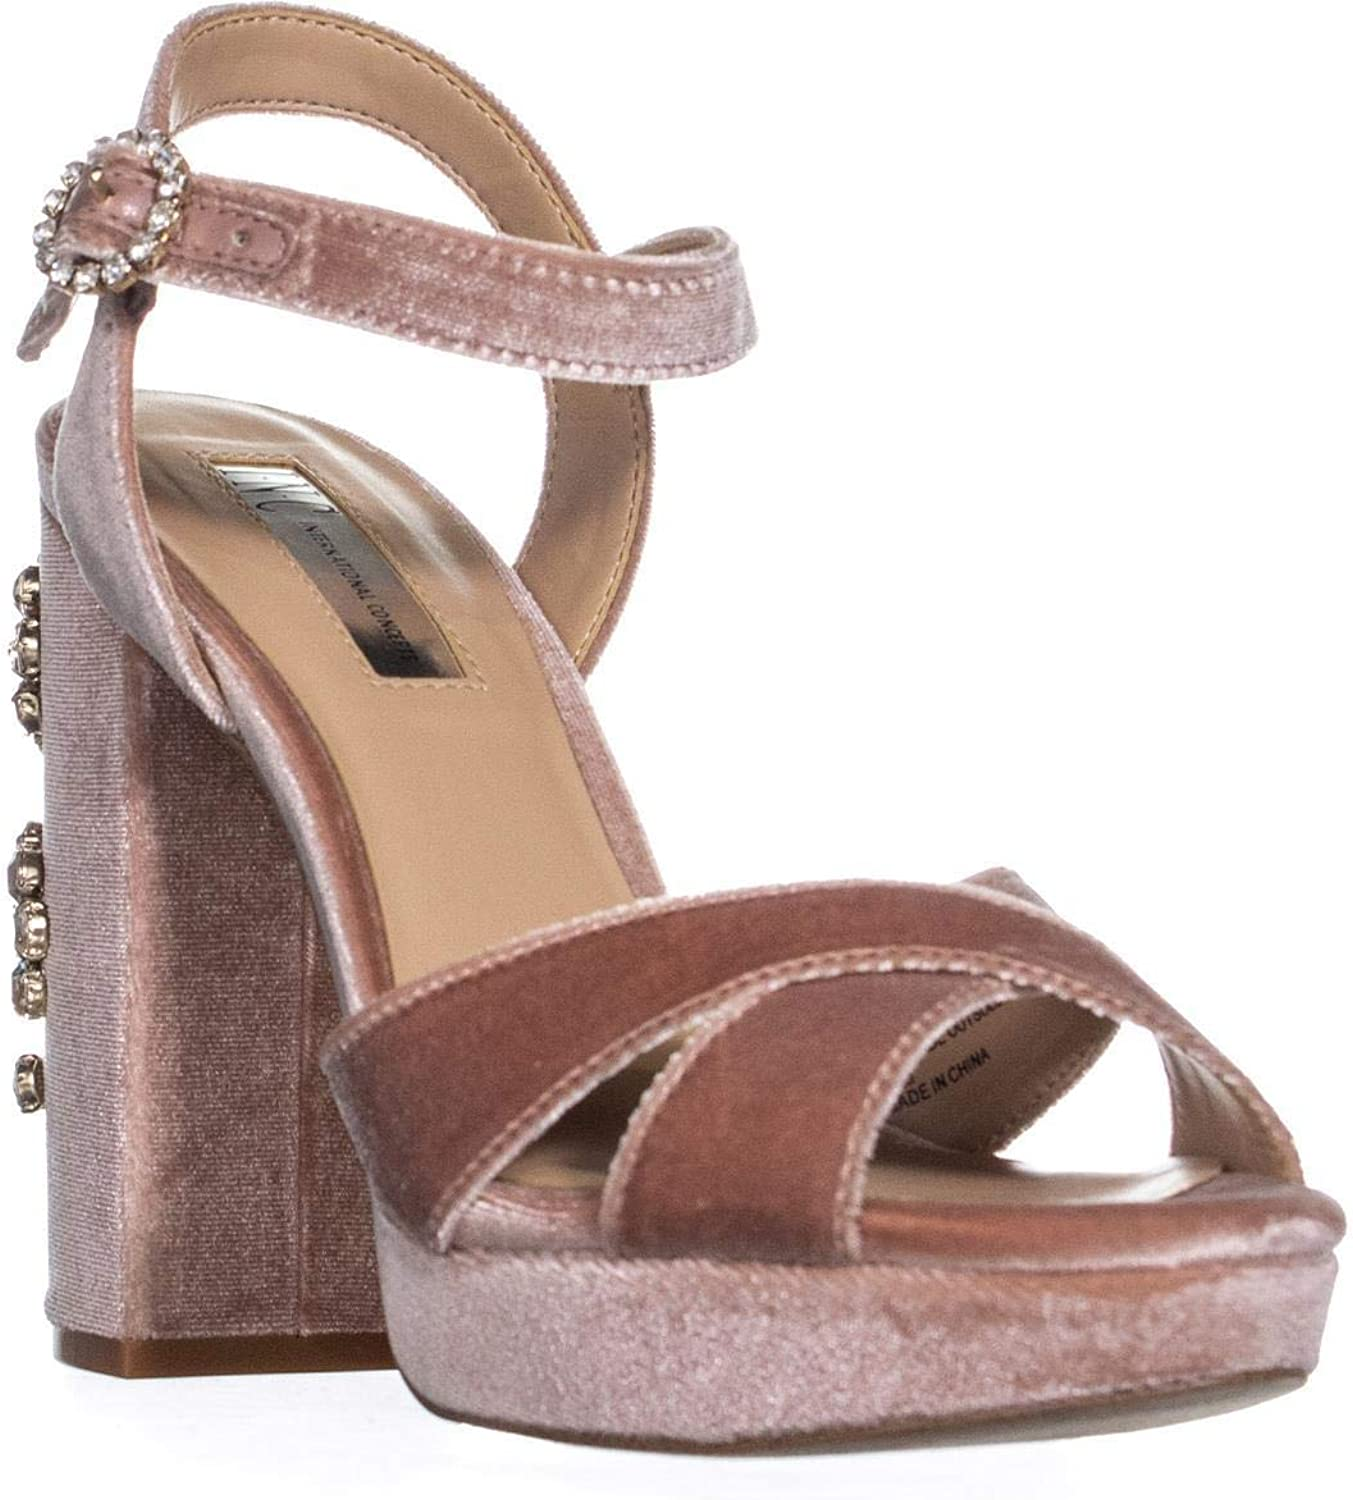 INC International Concepts Womens pinkrria Suede Open Toe Special Occasion St.